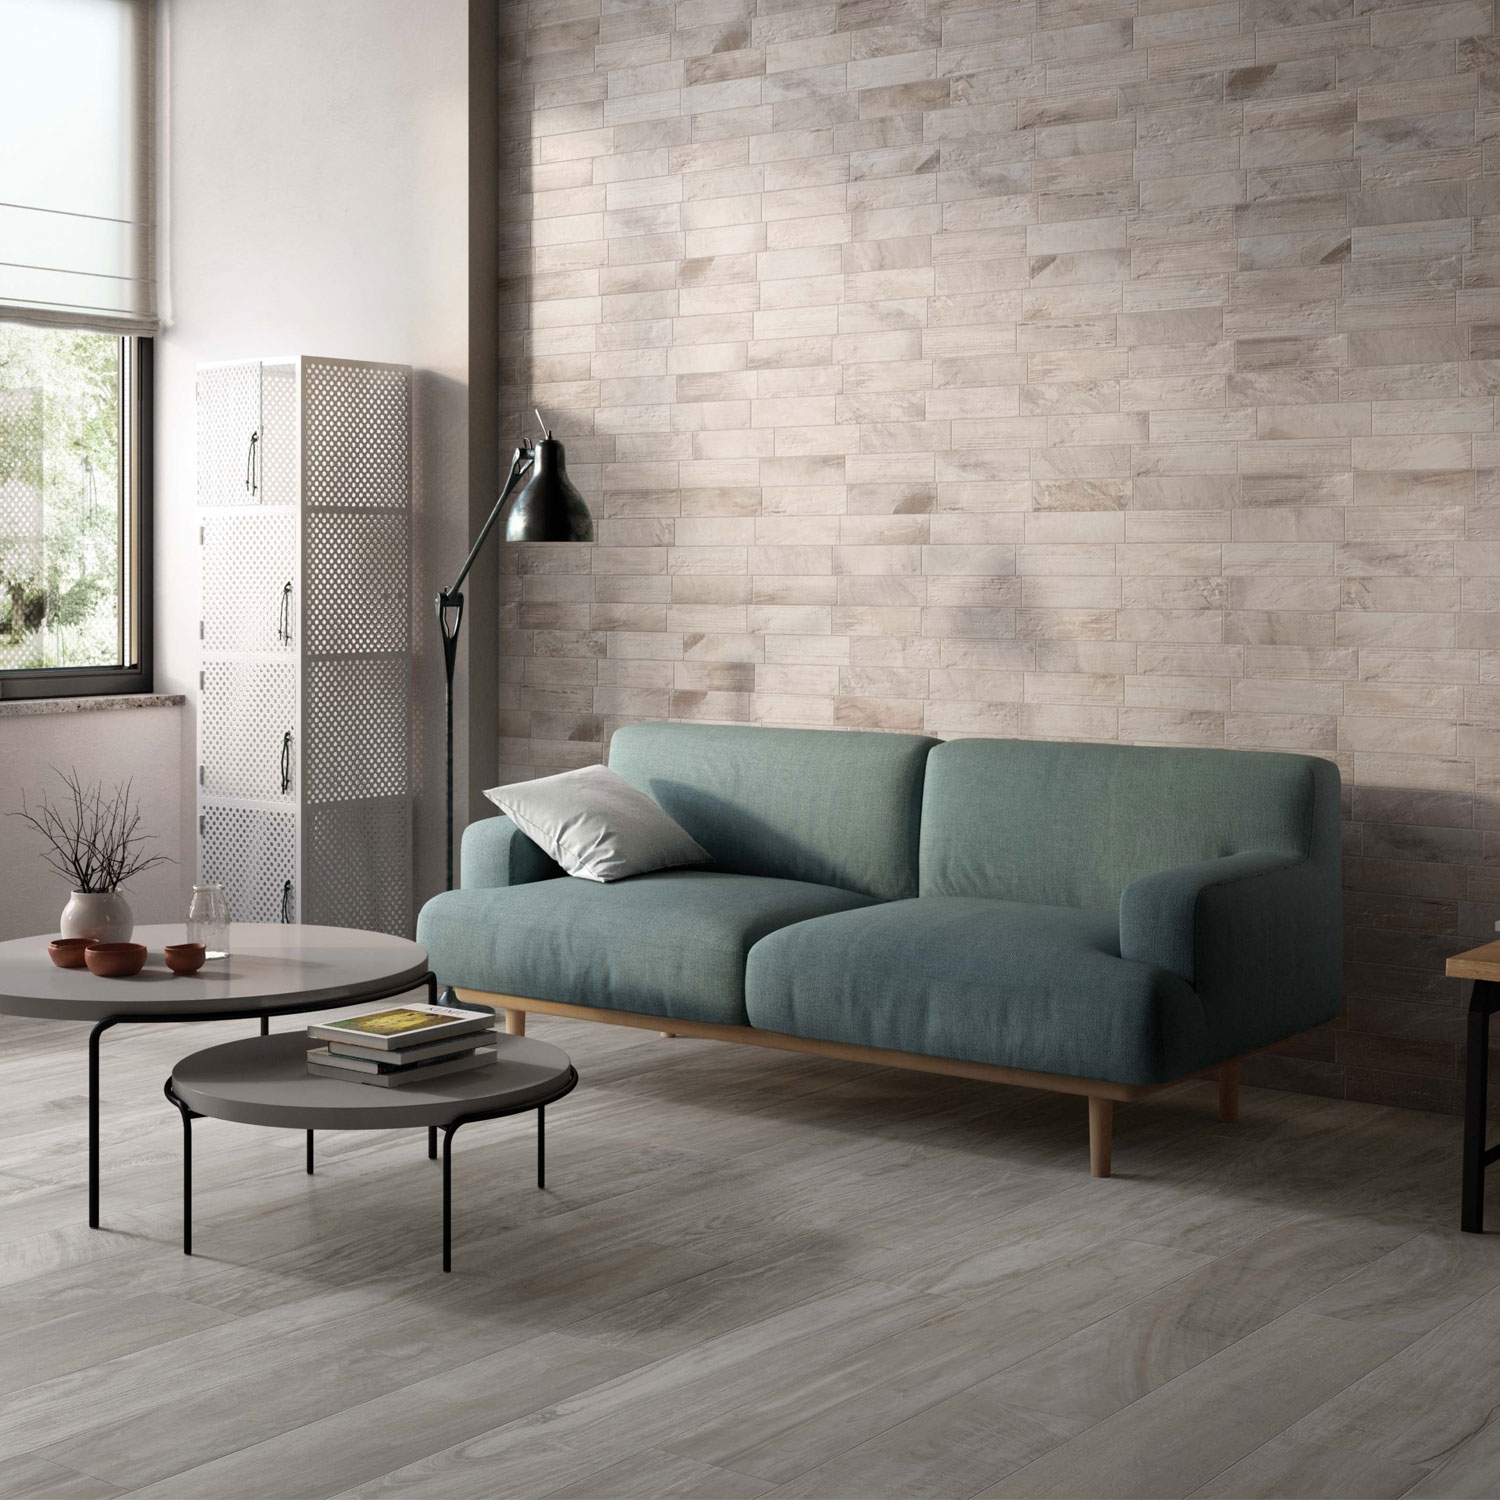 RAK Circle Wood Porcelain Tiles - 1200mm x 195mm - Grey (Box of 5)-0